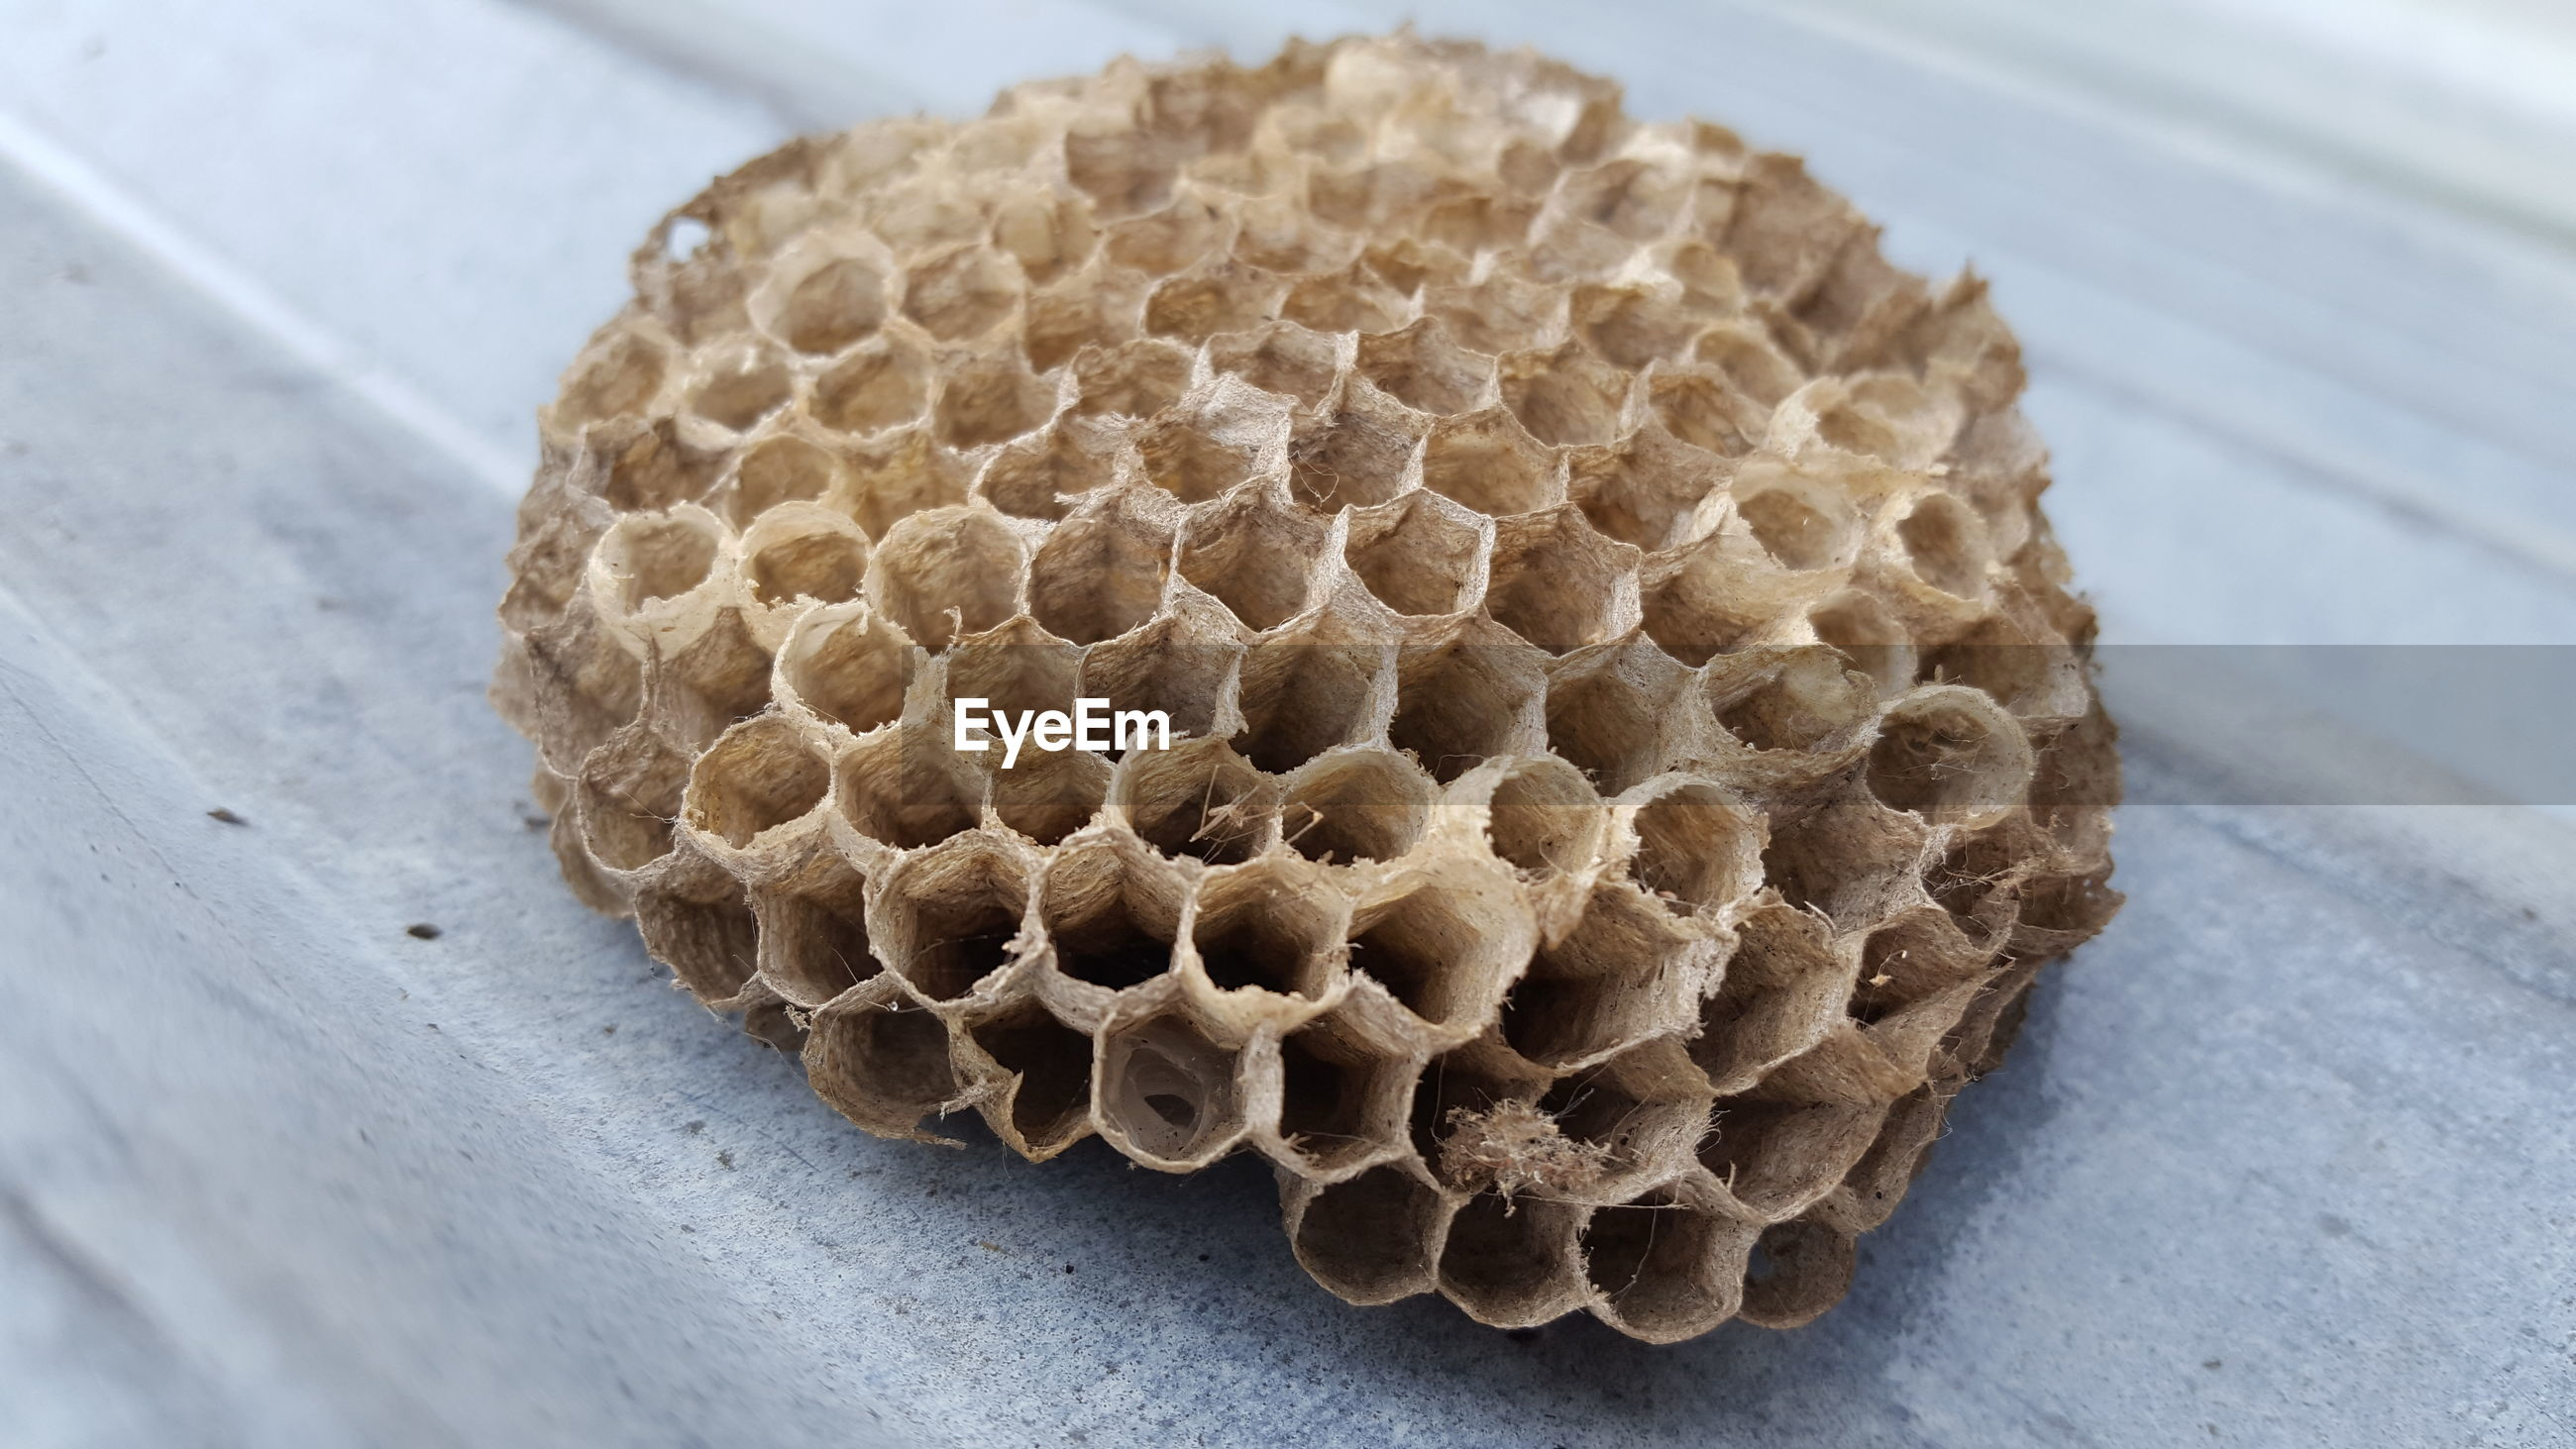 HIGH ANGLE VIEW OF BEE ON A PLATE